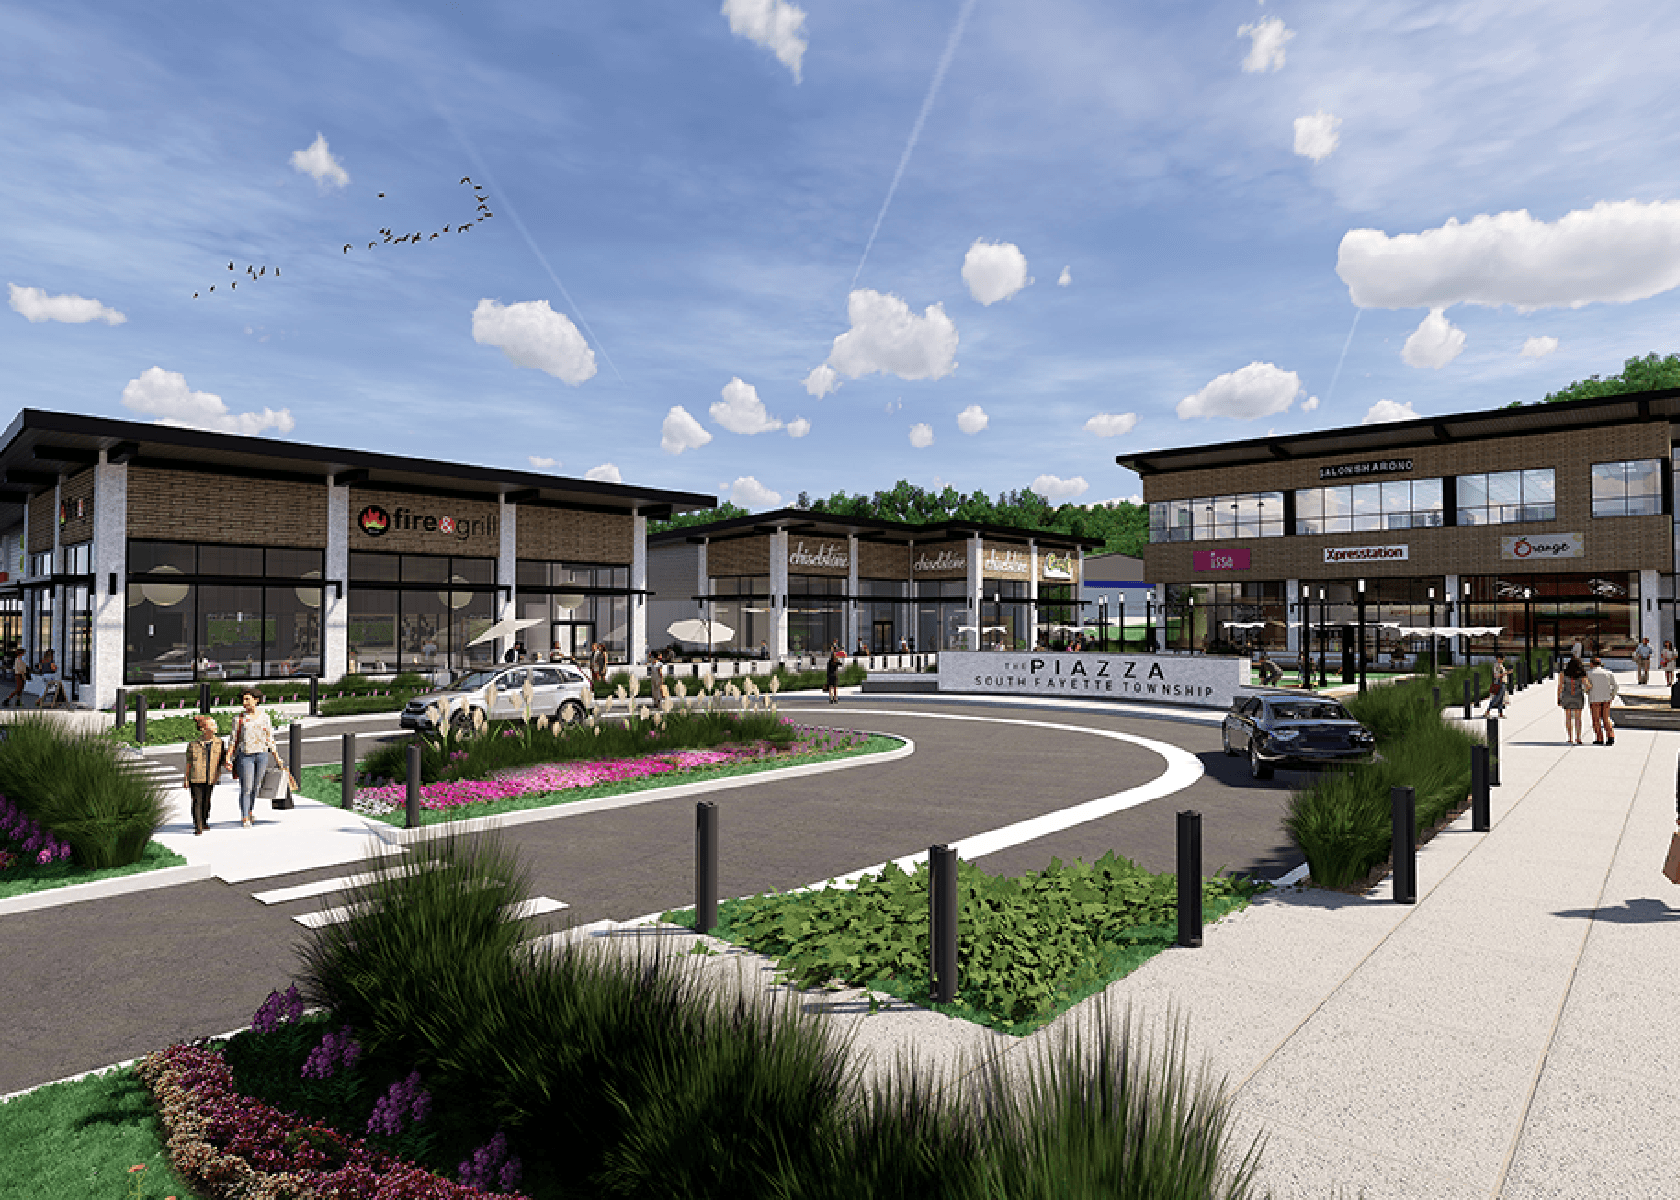 Digital rendering of the Piazza shopping plaza with the center's sign that reads: The Piazza, South Fayette Township